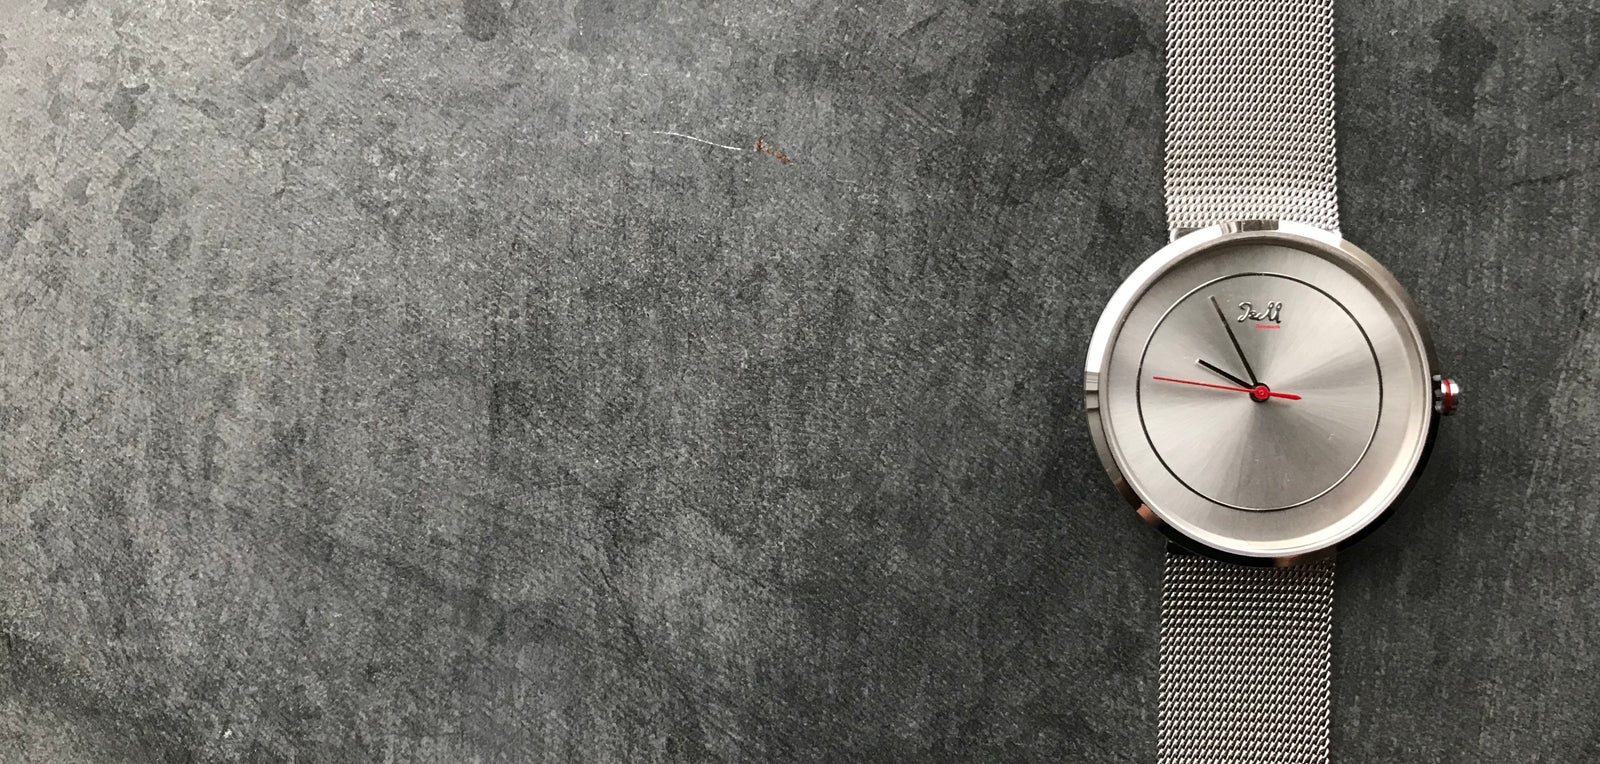 Minimalistic quality watches by J&M Denmark